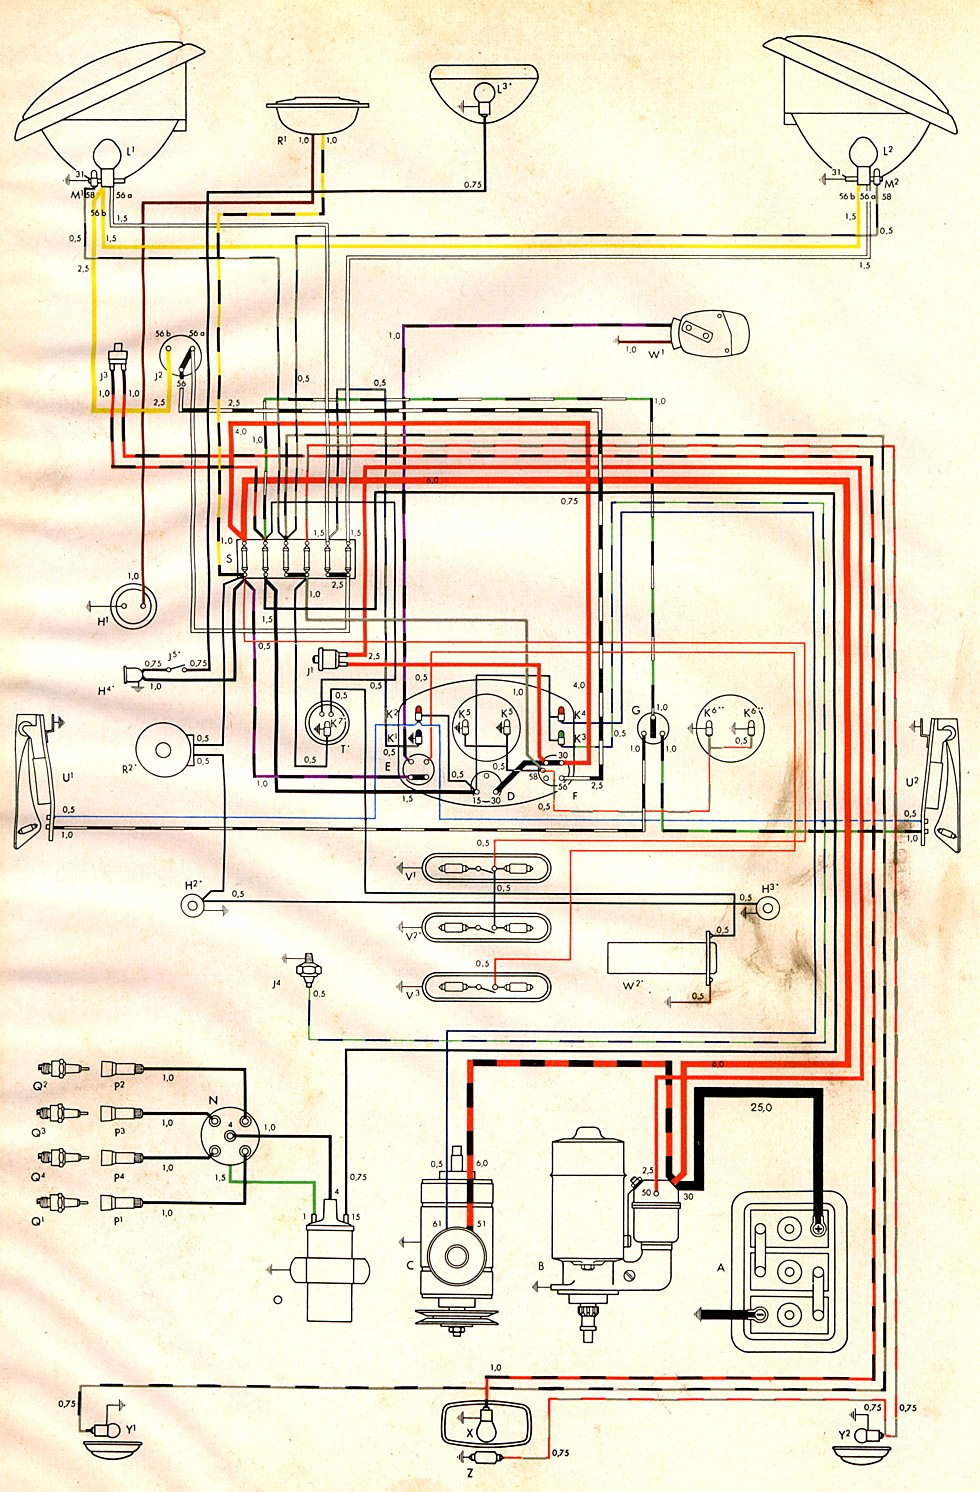 bus_jan54 1954 bus wiring diagram thegoldenbug com bus wiring diagrams at eliteediting.co